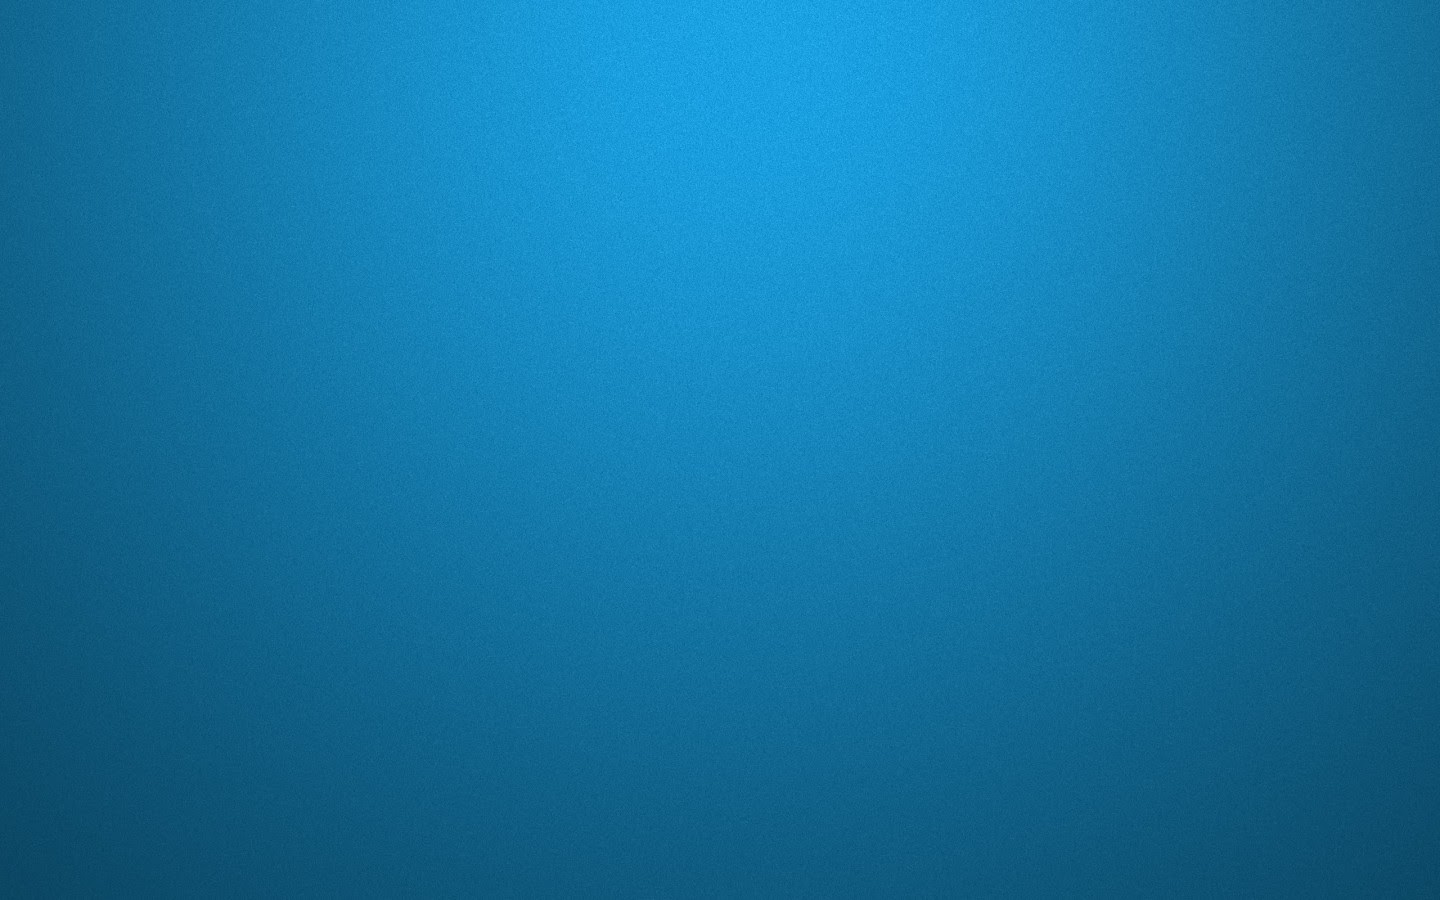 Plain wallpapers download free high definition desktop for Plain blue wallpaper